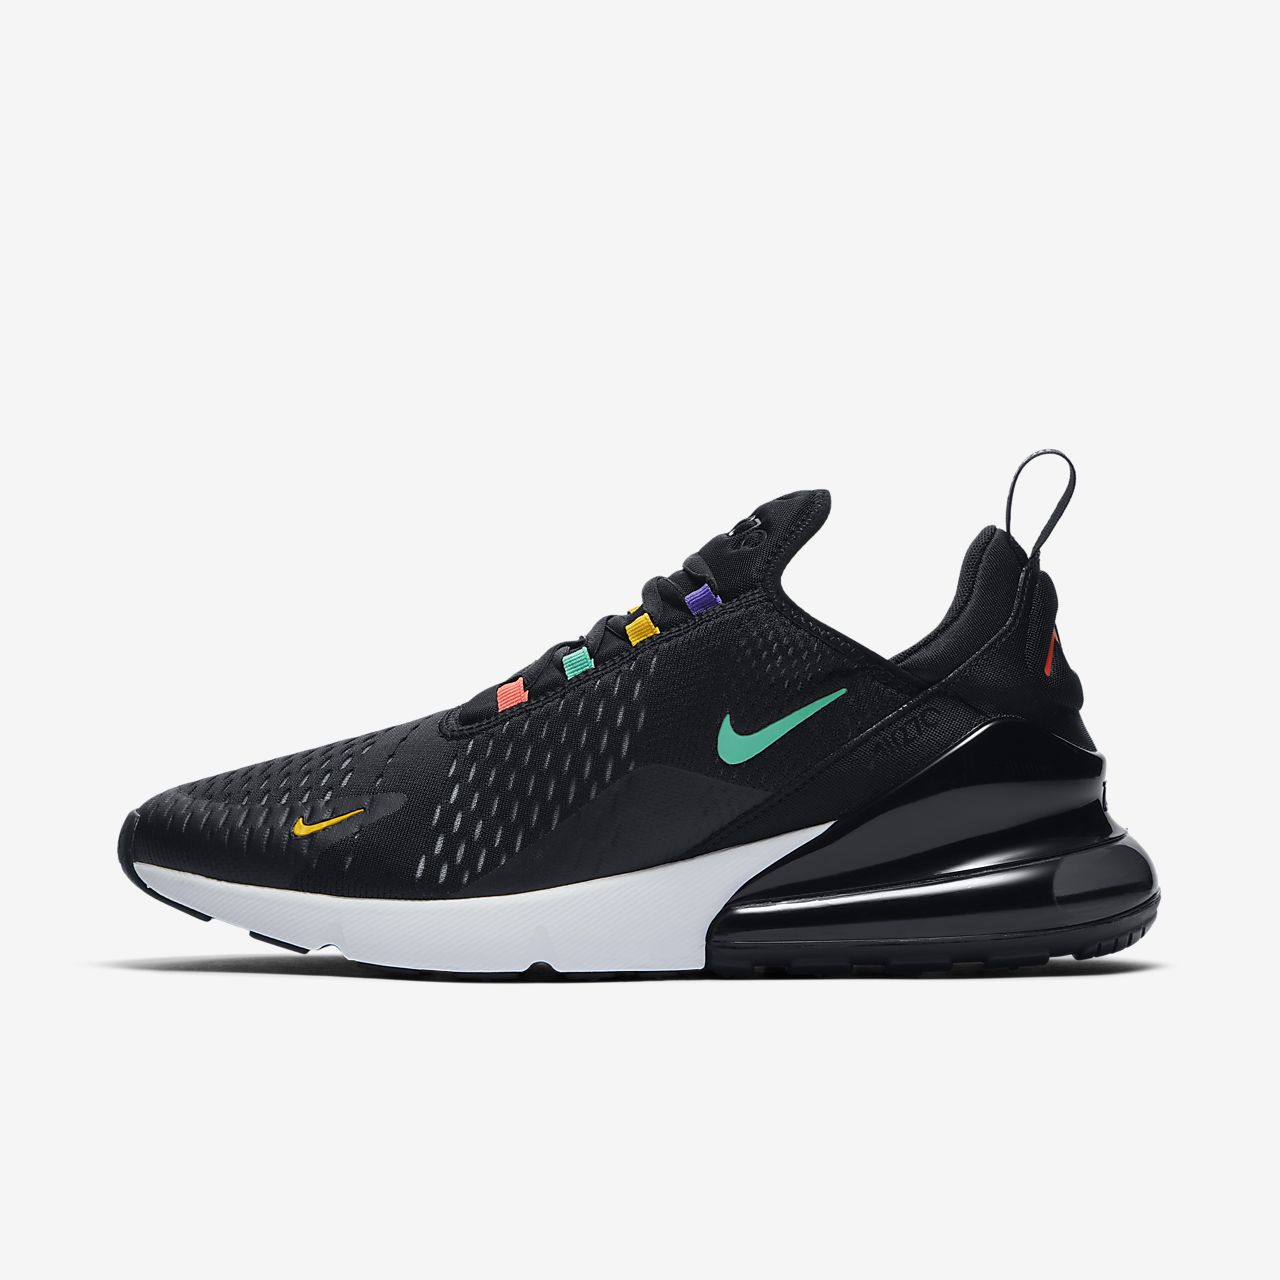 the best attitude c4674 2005a Nike Air Max 270 Men's Shoe